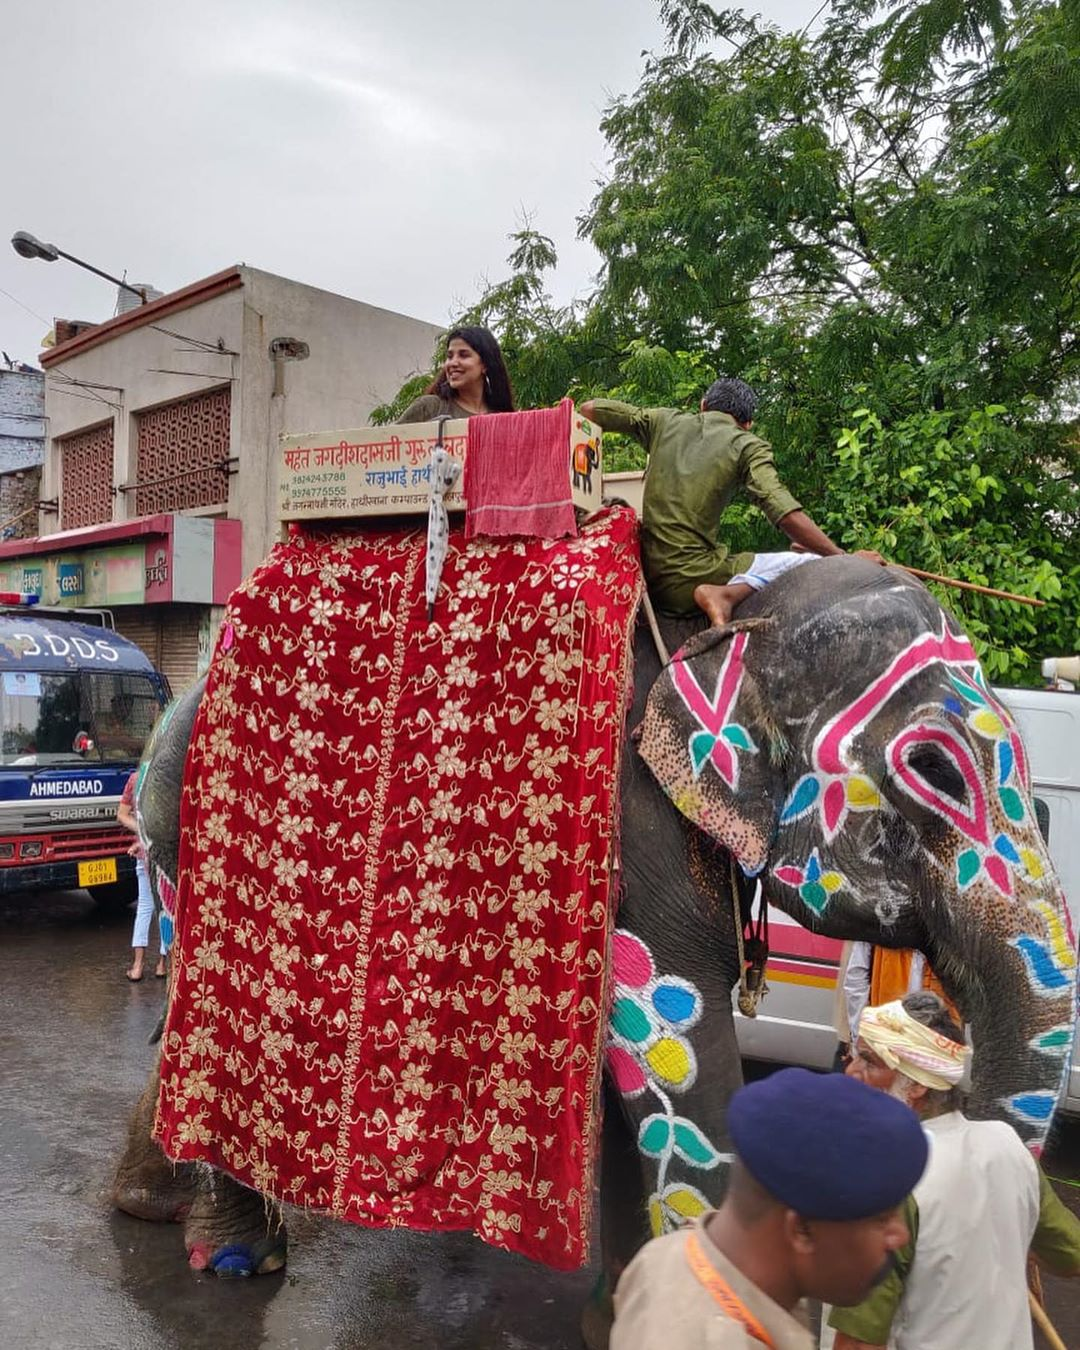 Join me live on my Facebook page #devaki n on my instalive to witness 142 years old Cutural n religious legacy of ahmedabad #Rathyatra I am leading the #Rathyatra by riding on the elephant No.1 #Yahanbhinumberone @redfmindia @nisha_narayanan @herain_patel @piyu_bhargava @ranjitphatak @isteyaq1 @rjharshredfm @rjdhruviredfm @dhrumilmavani @imraanibraheem @yasar.pathan